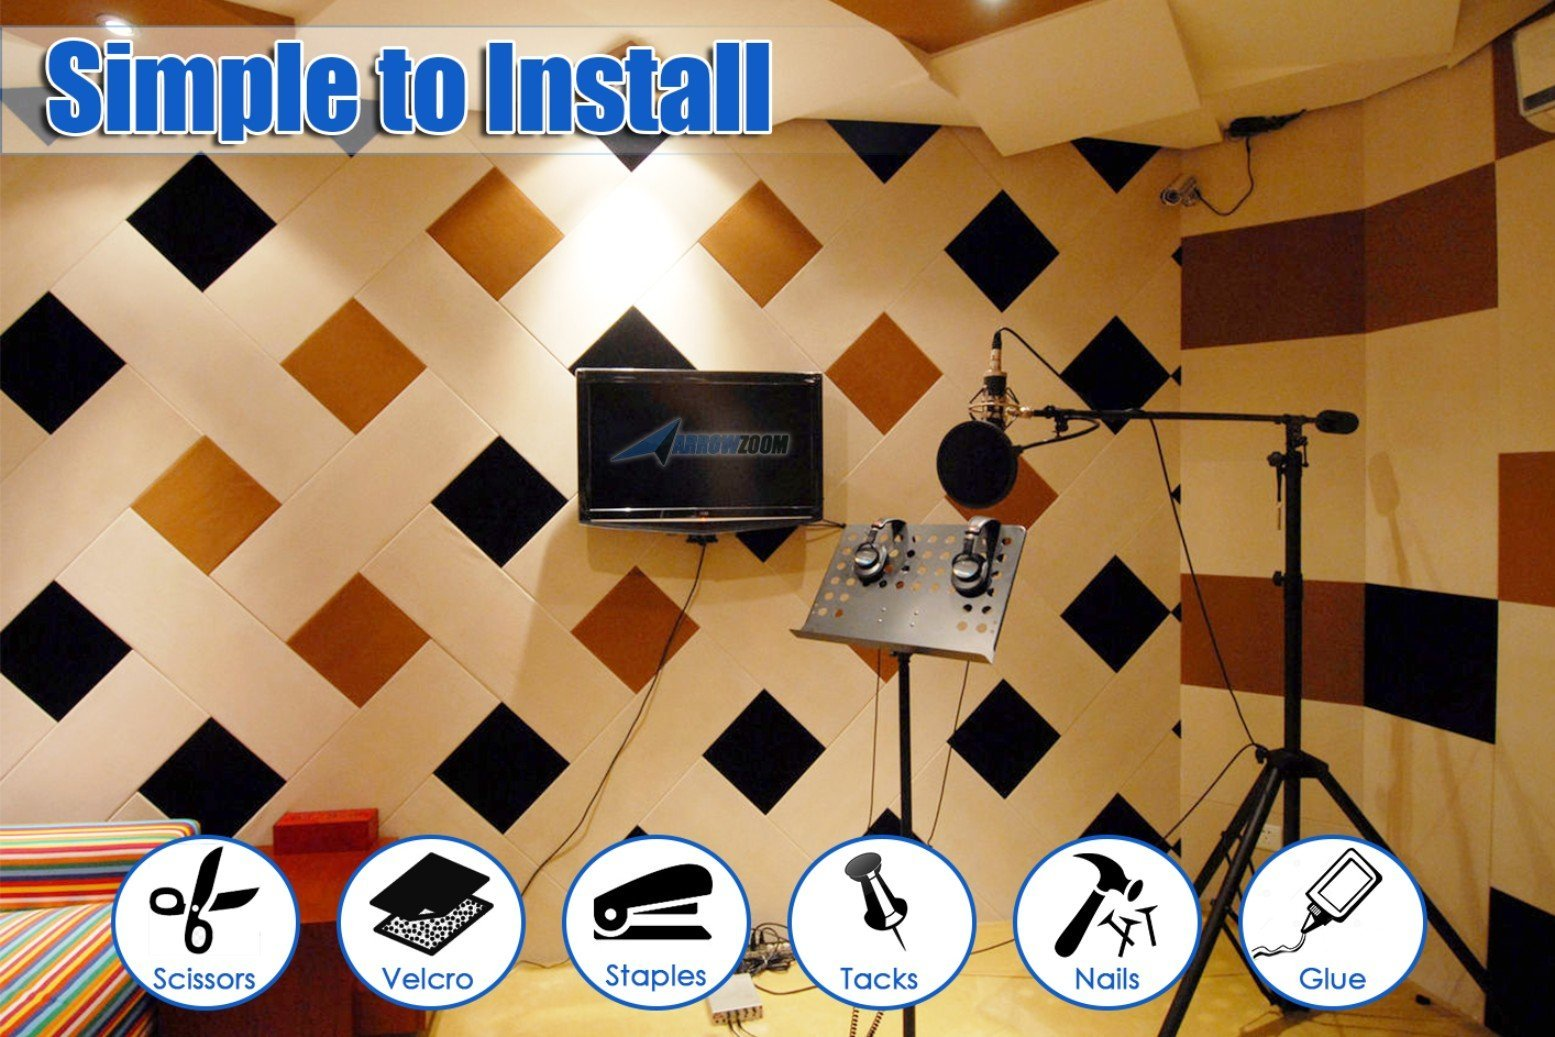 Arrowzoom New 8 Pieces 12 X 12 X 0.4 inches White Acoustic Soundproofing Insulation Panel Tiles AZ1093 (White) by Arrowzoom (Image #7)